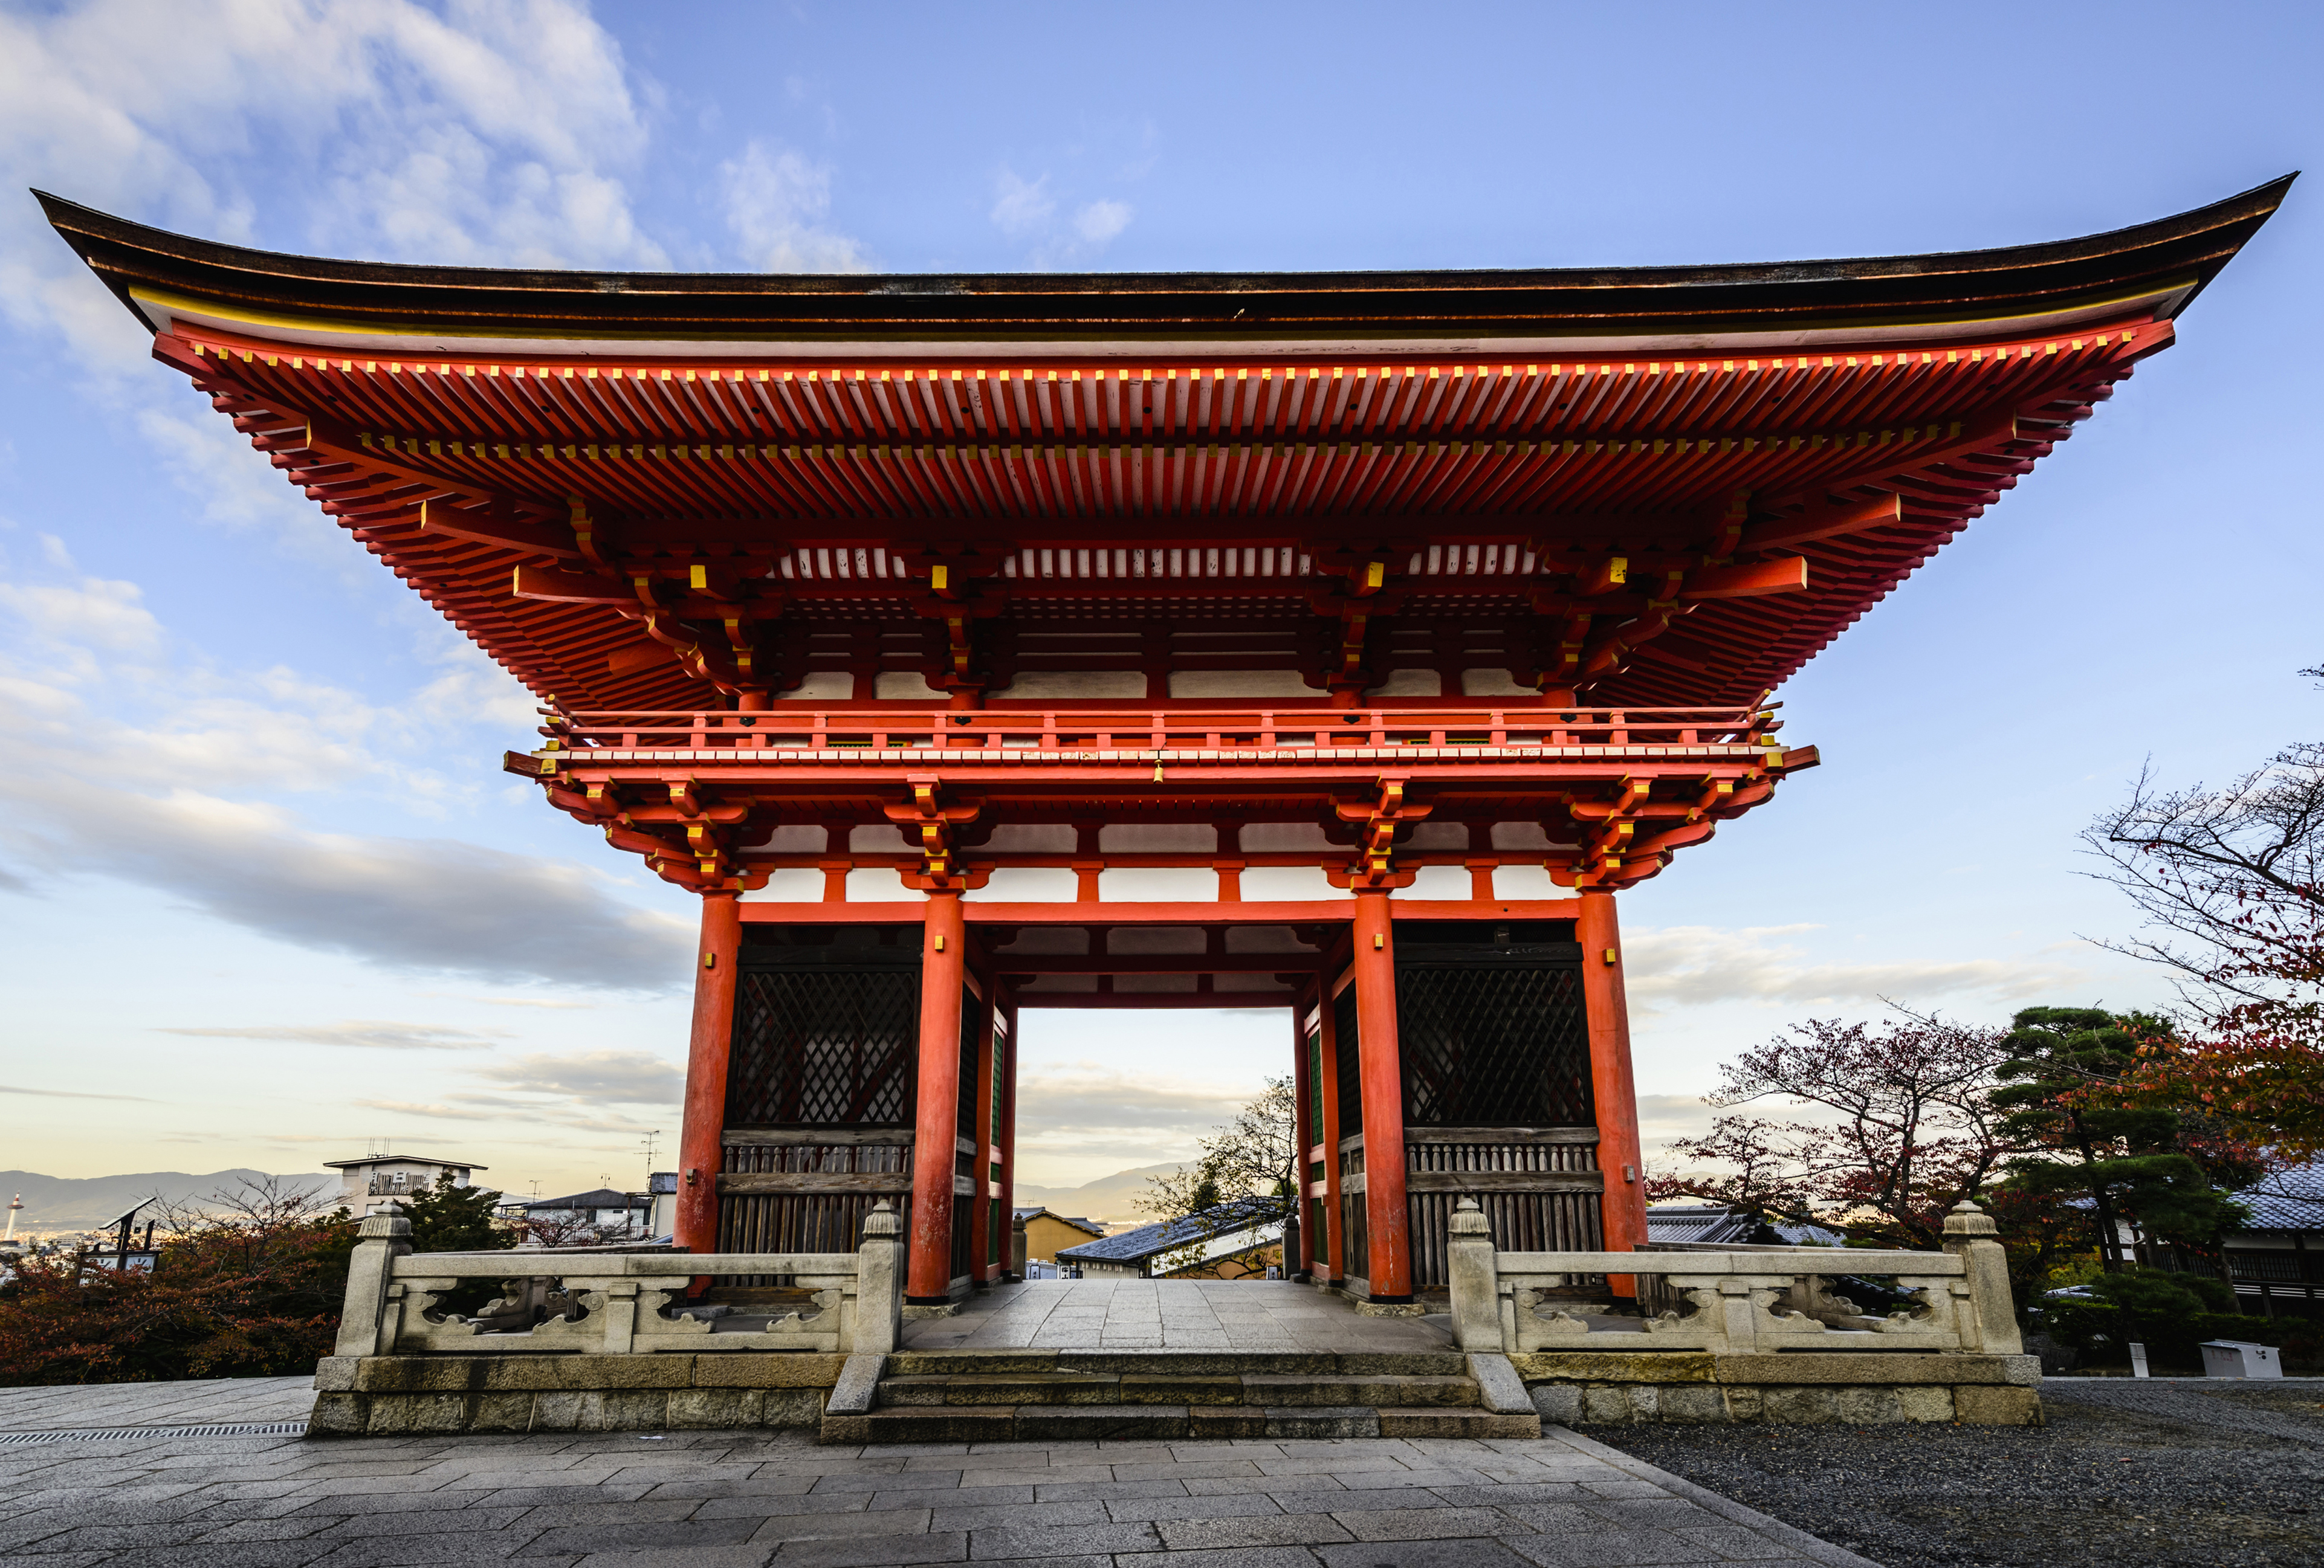 Entrance to Kiyomizu Dera Kyoto, Japan (Getty / Spaces Images)